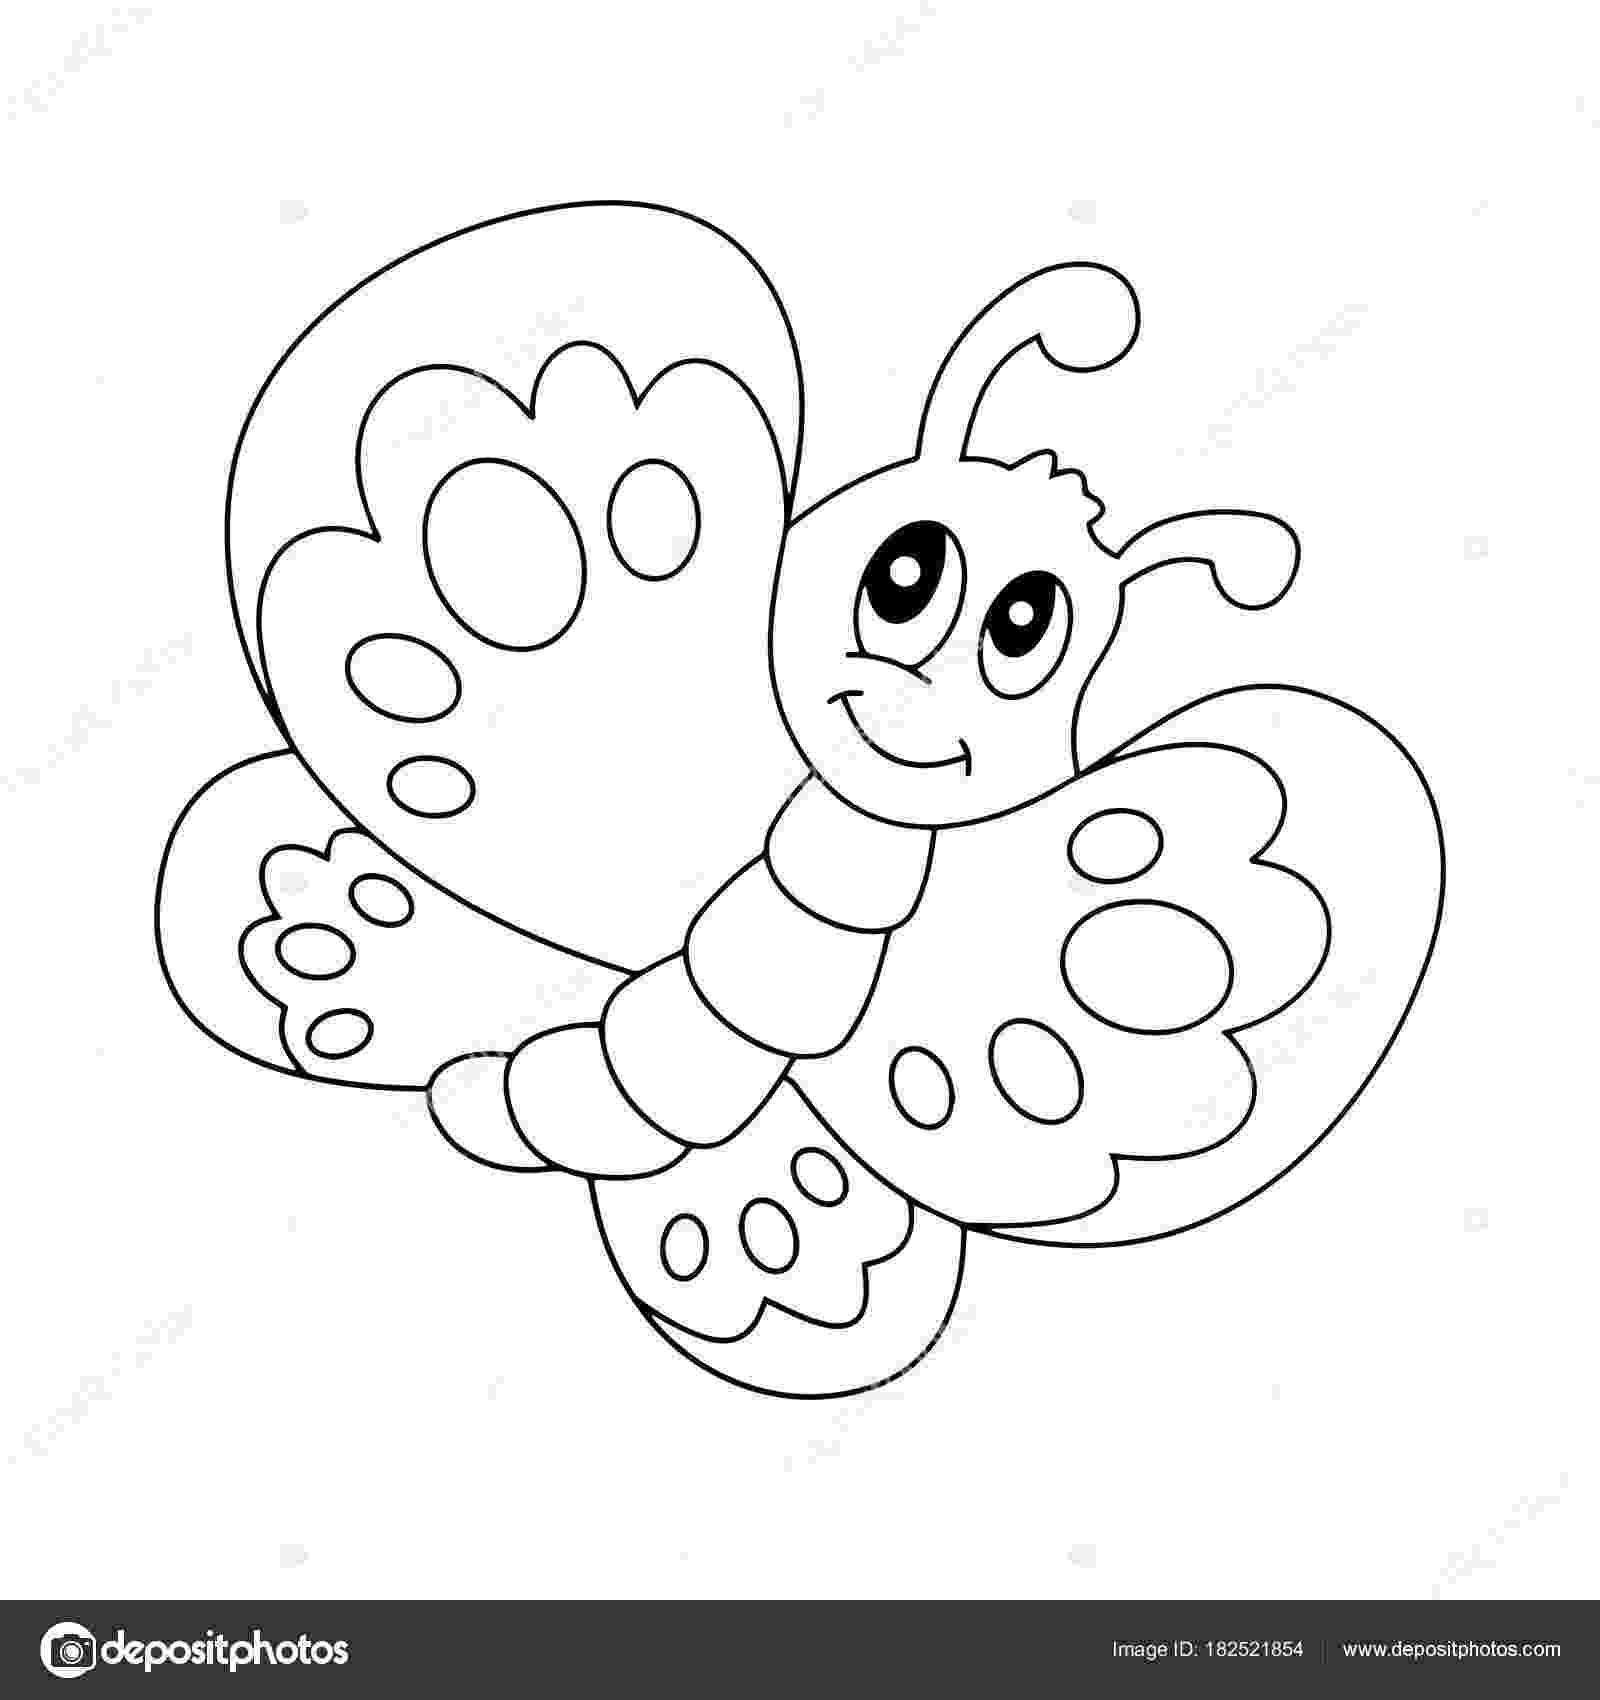 cartoon butterfly pictures to color free butterfly cartoon images download free clip art cartoon pictures butterfly color to